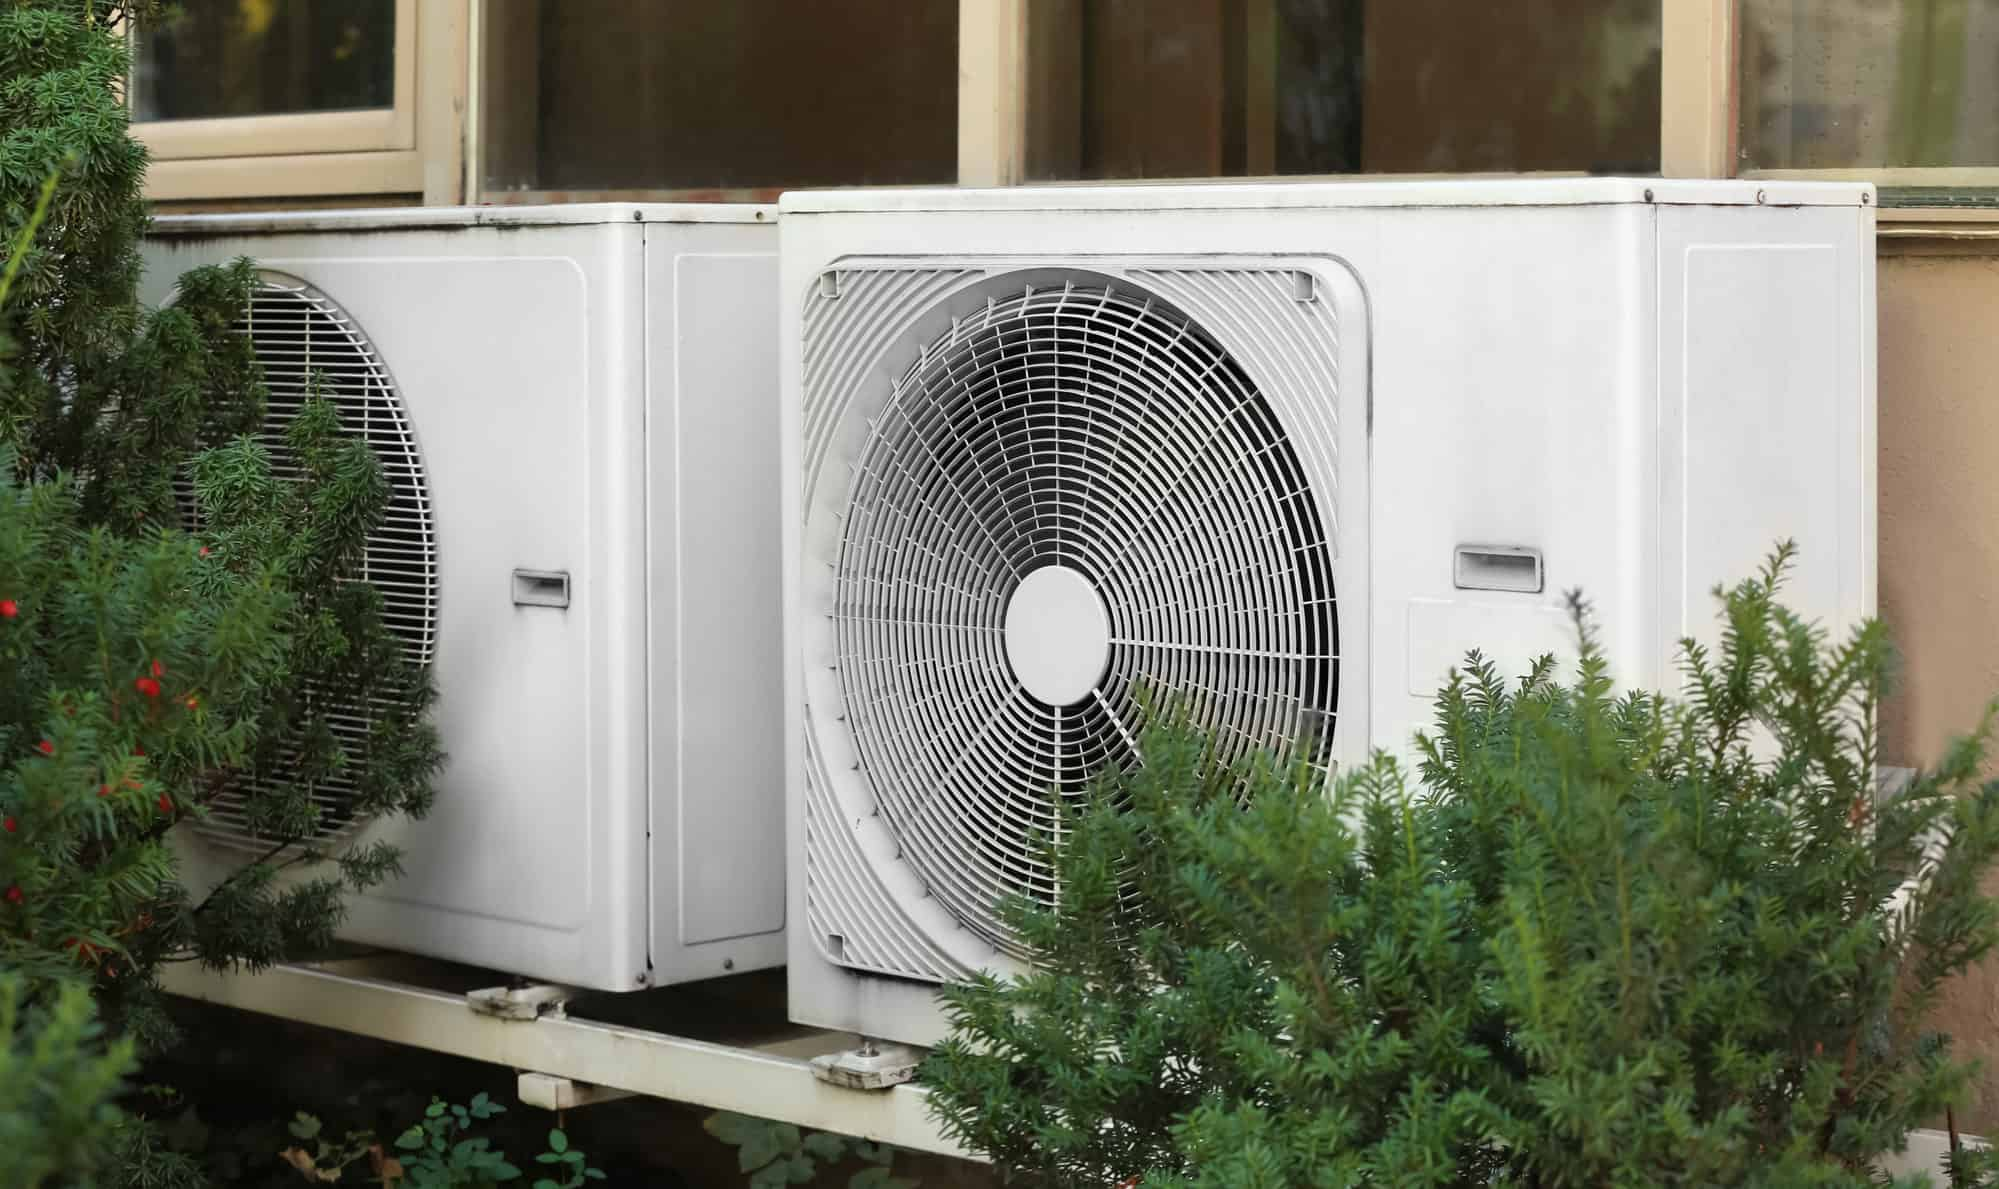 Some Aspects To Consider Before Buying A Window Air Conditioner